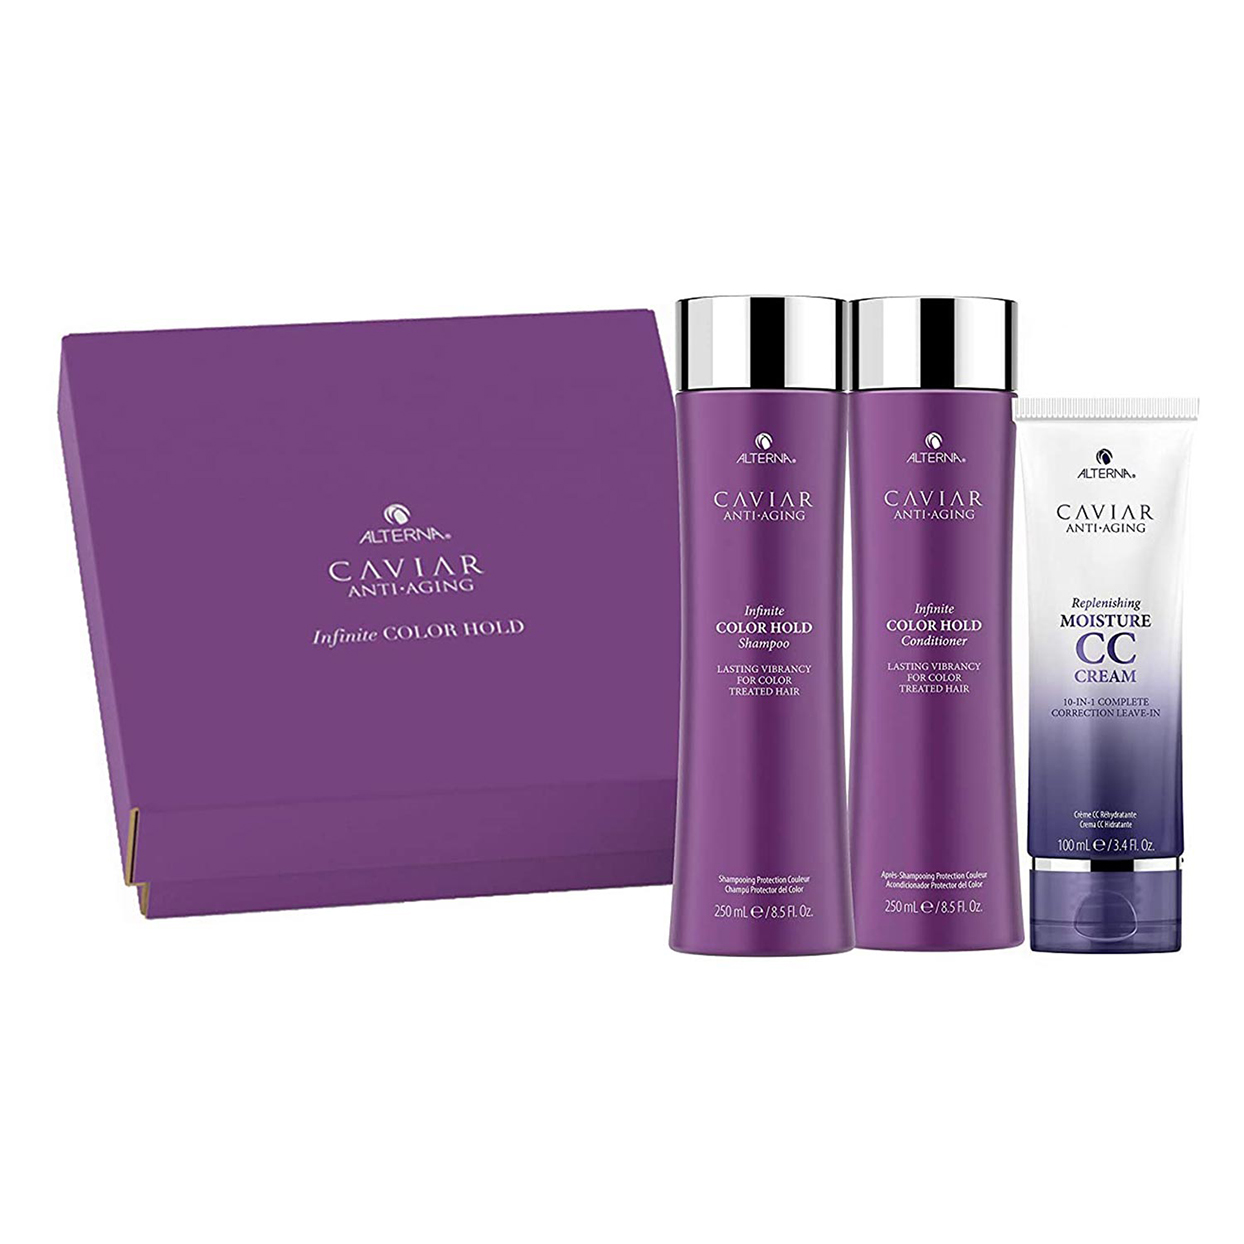 Alterna Anti-Aging Infinite Color Hold Shampoo and Conditioner Kit,